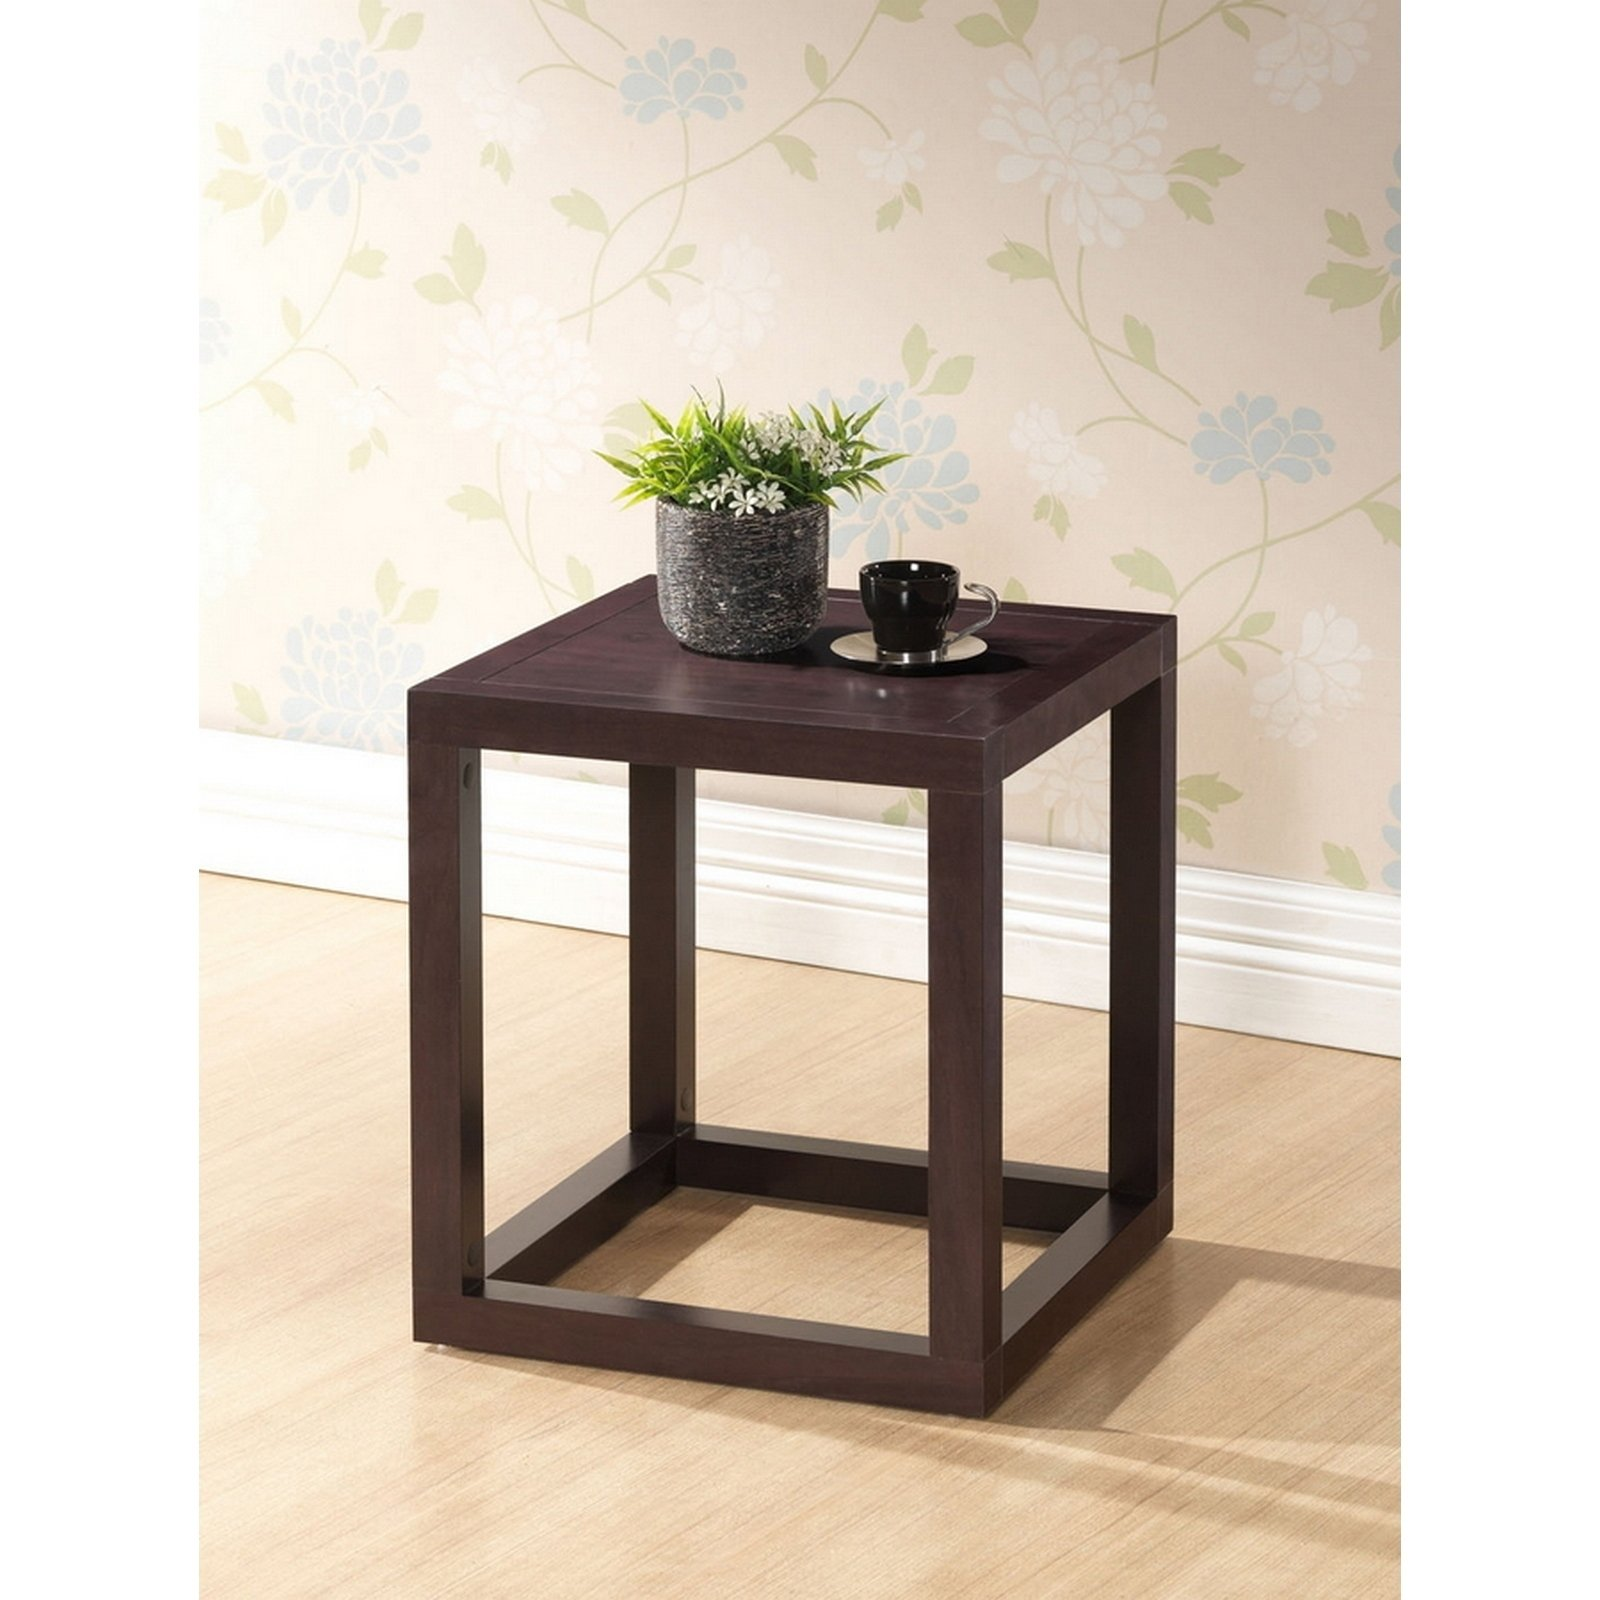 urban designs hallis brown modern accent table and nightstand tables free shipping today farm dining with bench screw coffee legs chrome martha stewart patio set black bar thin